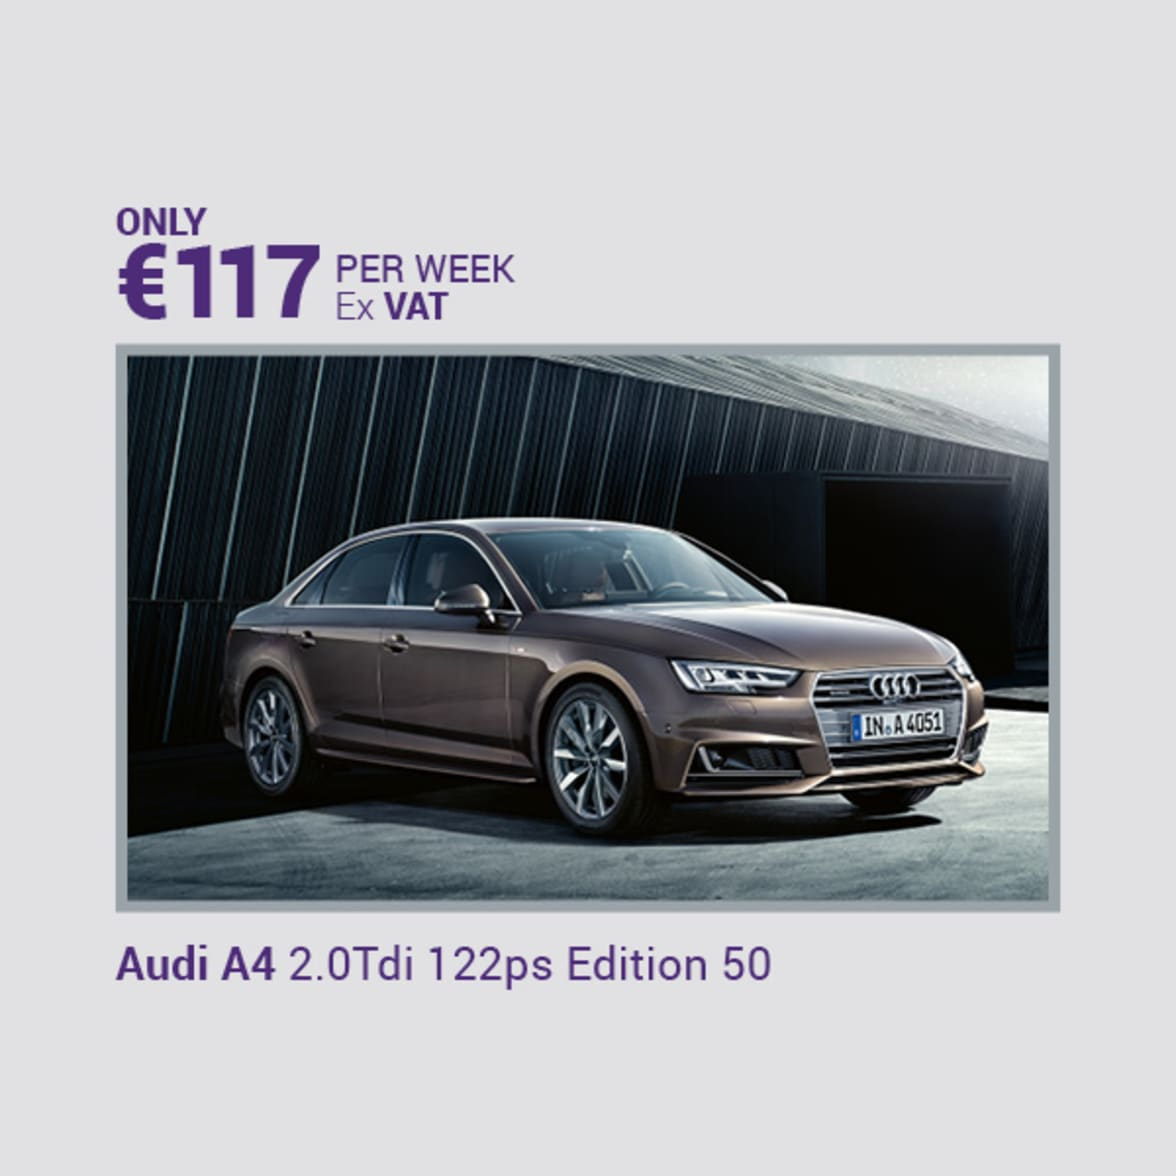 Joe Duffy Leasing Exclusive Audi Offers New Used Cars Dublin - Audi offers